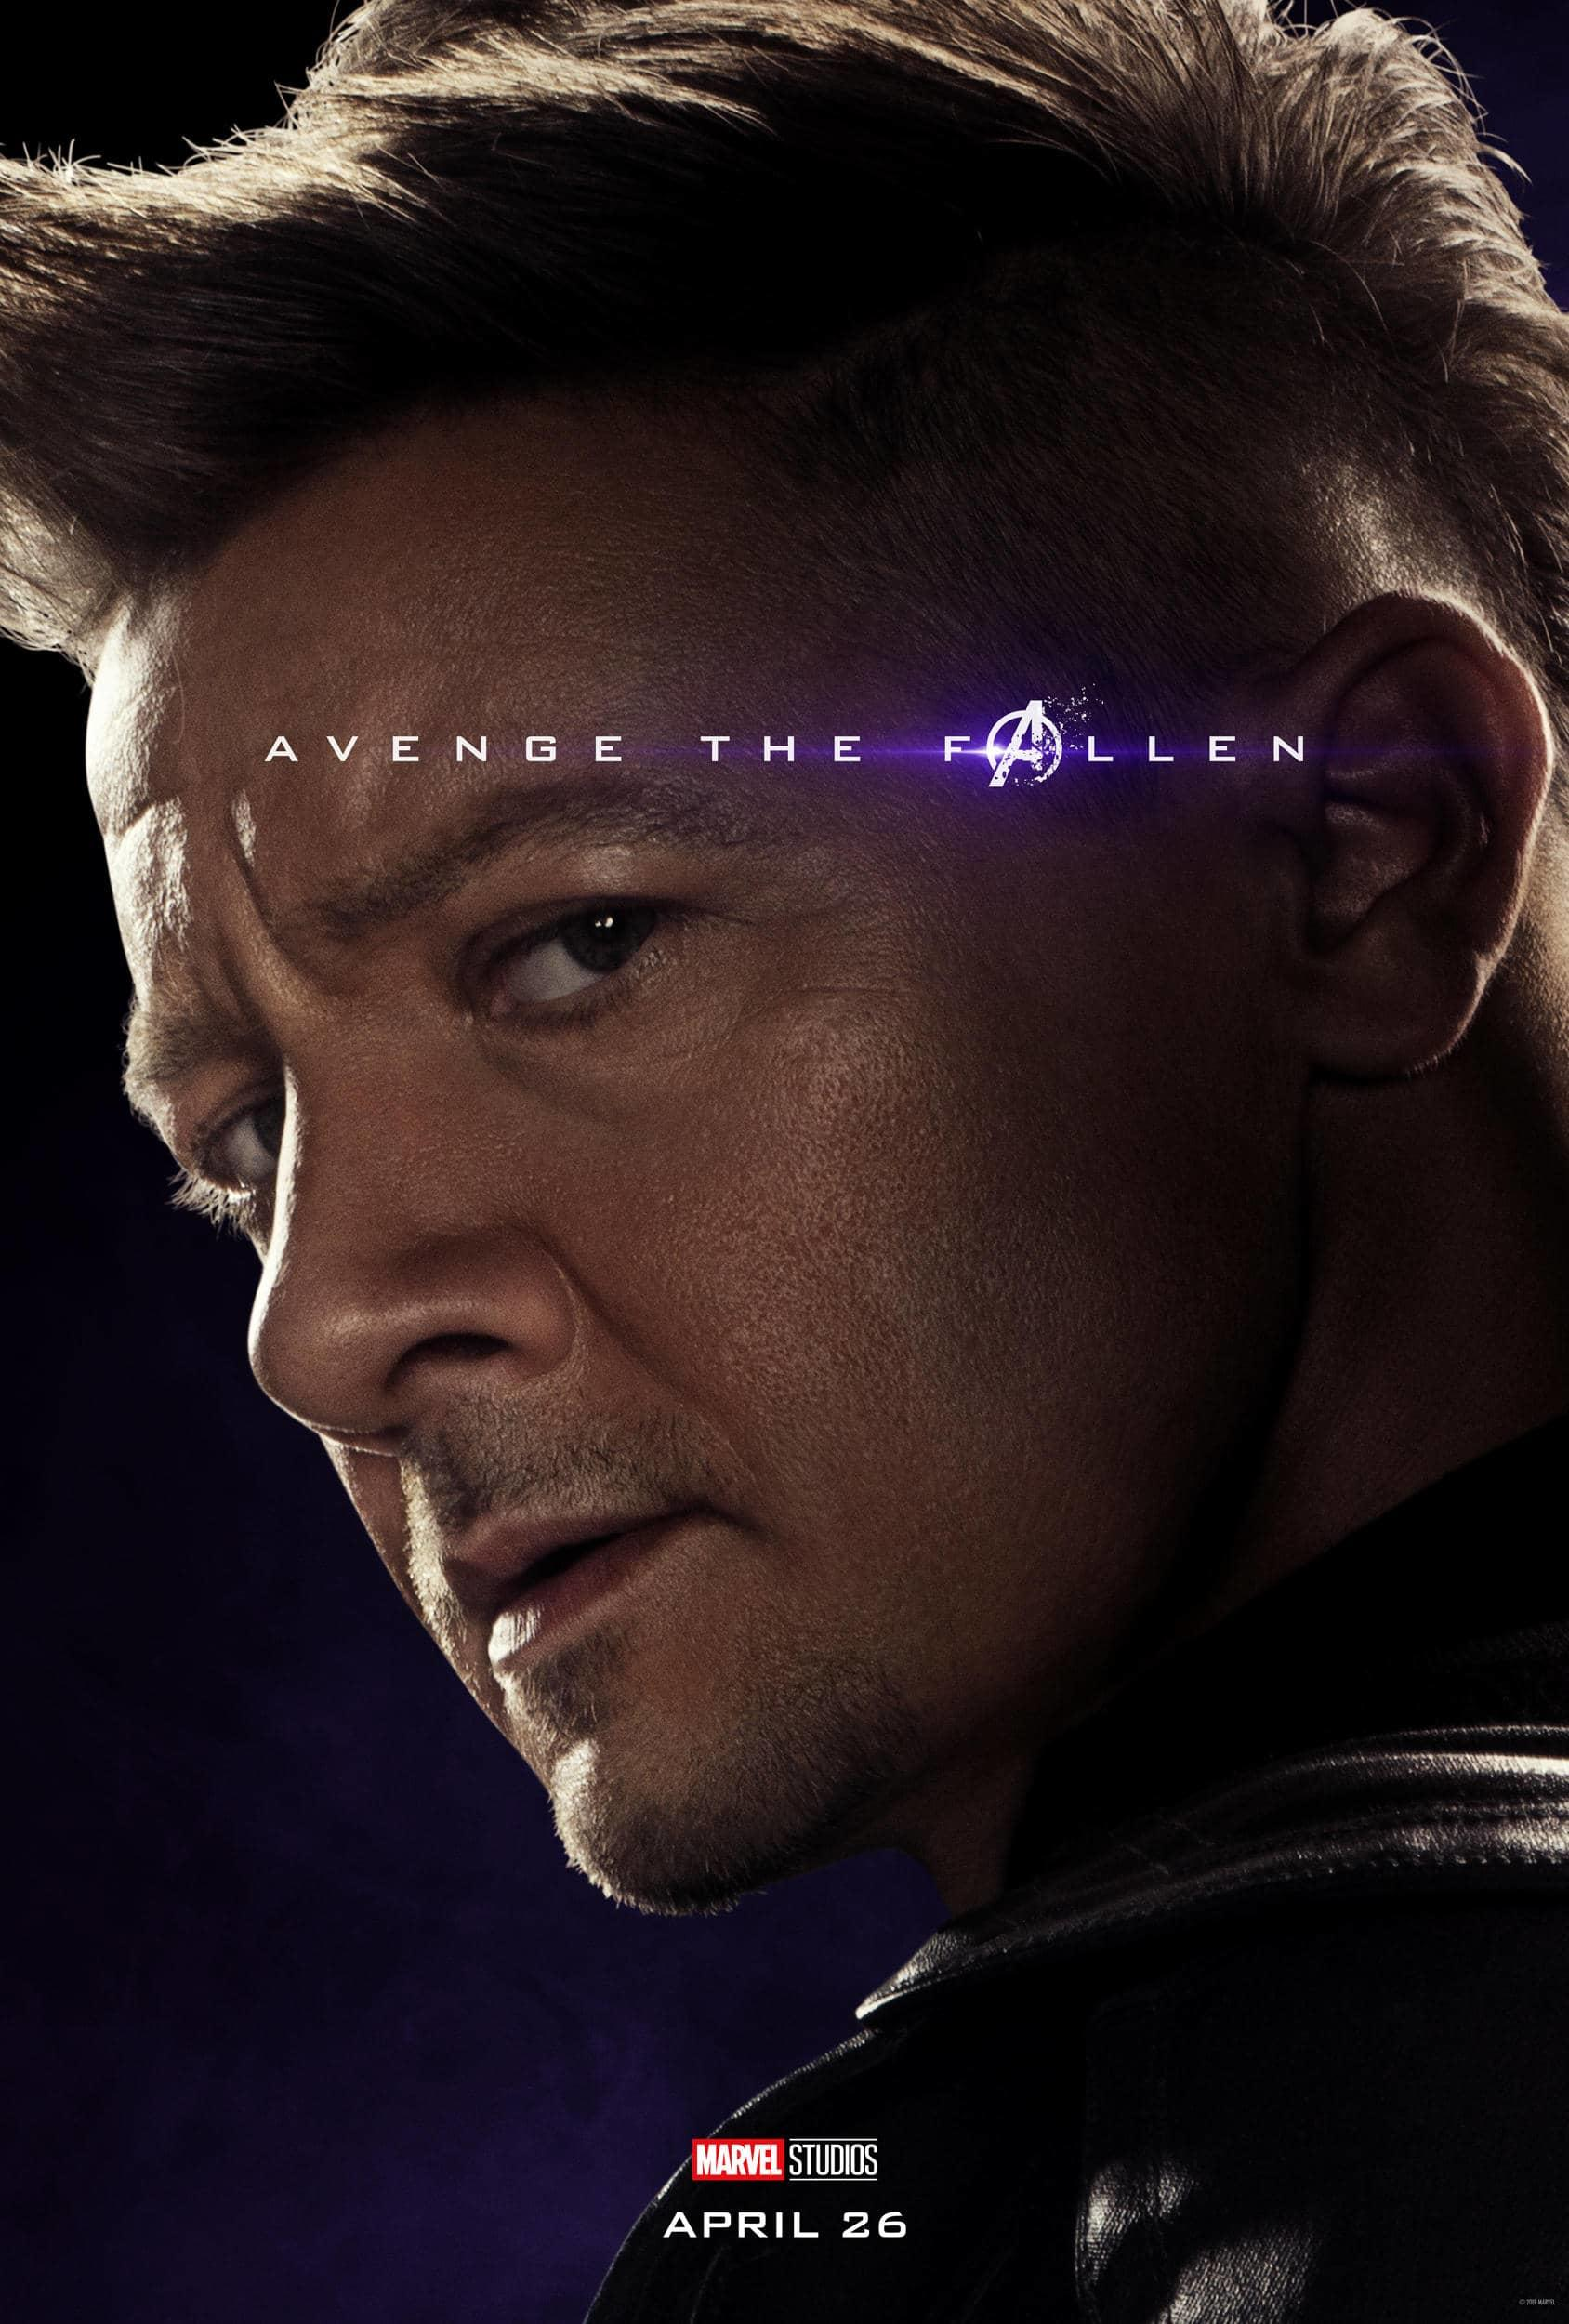 Marvel Studios' Avengers: Endgame Movie Cast Hawkeye (Clint Barton) Jeremy Renner